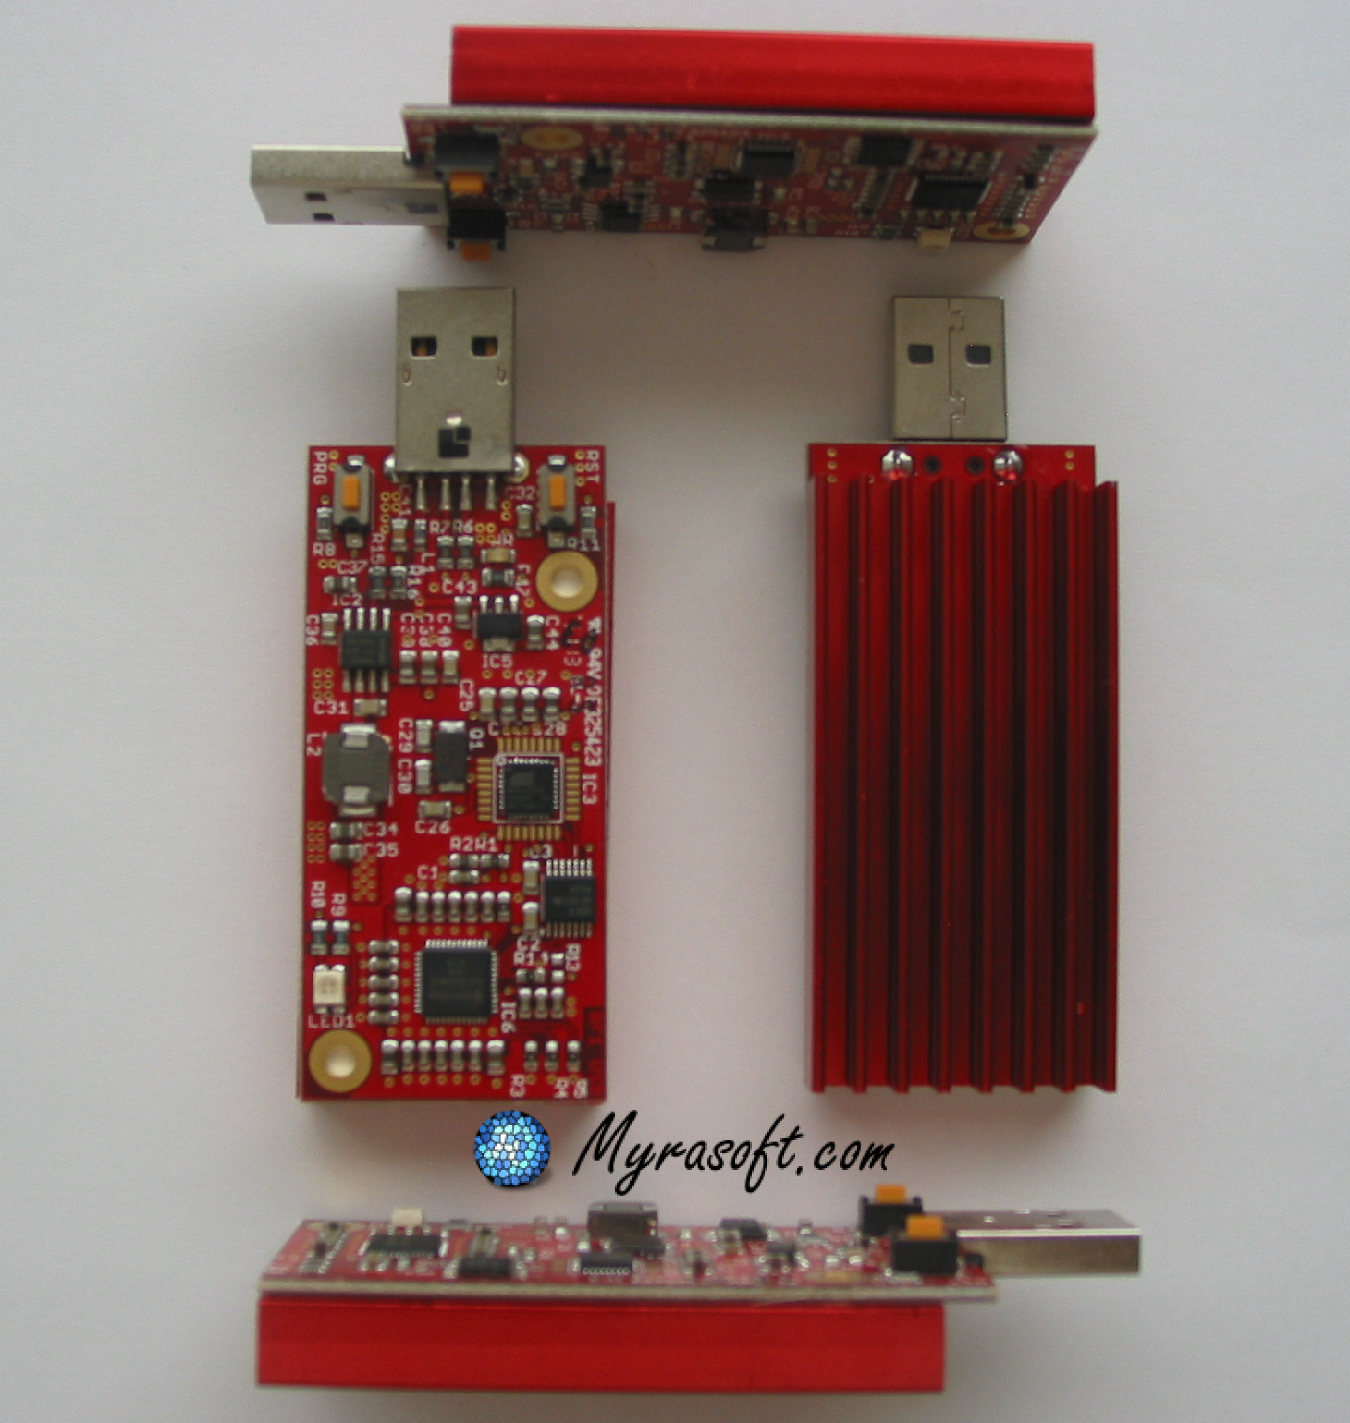 The Red Fury Bitcoin miner device is a fantastic item for bitcoin enthusiasts.